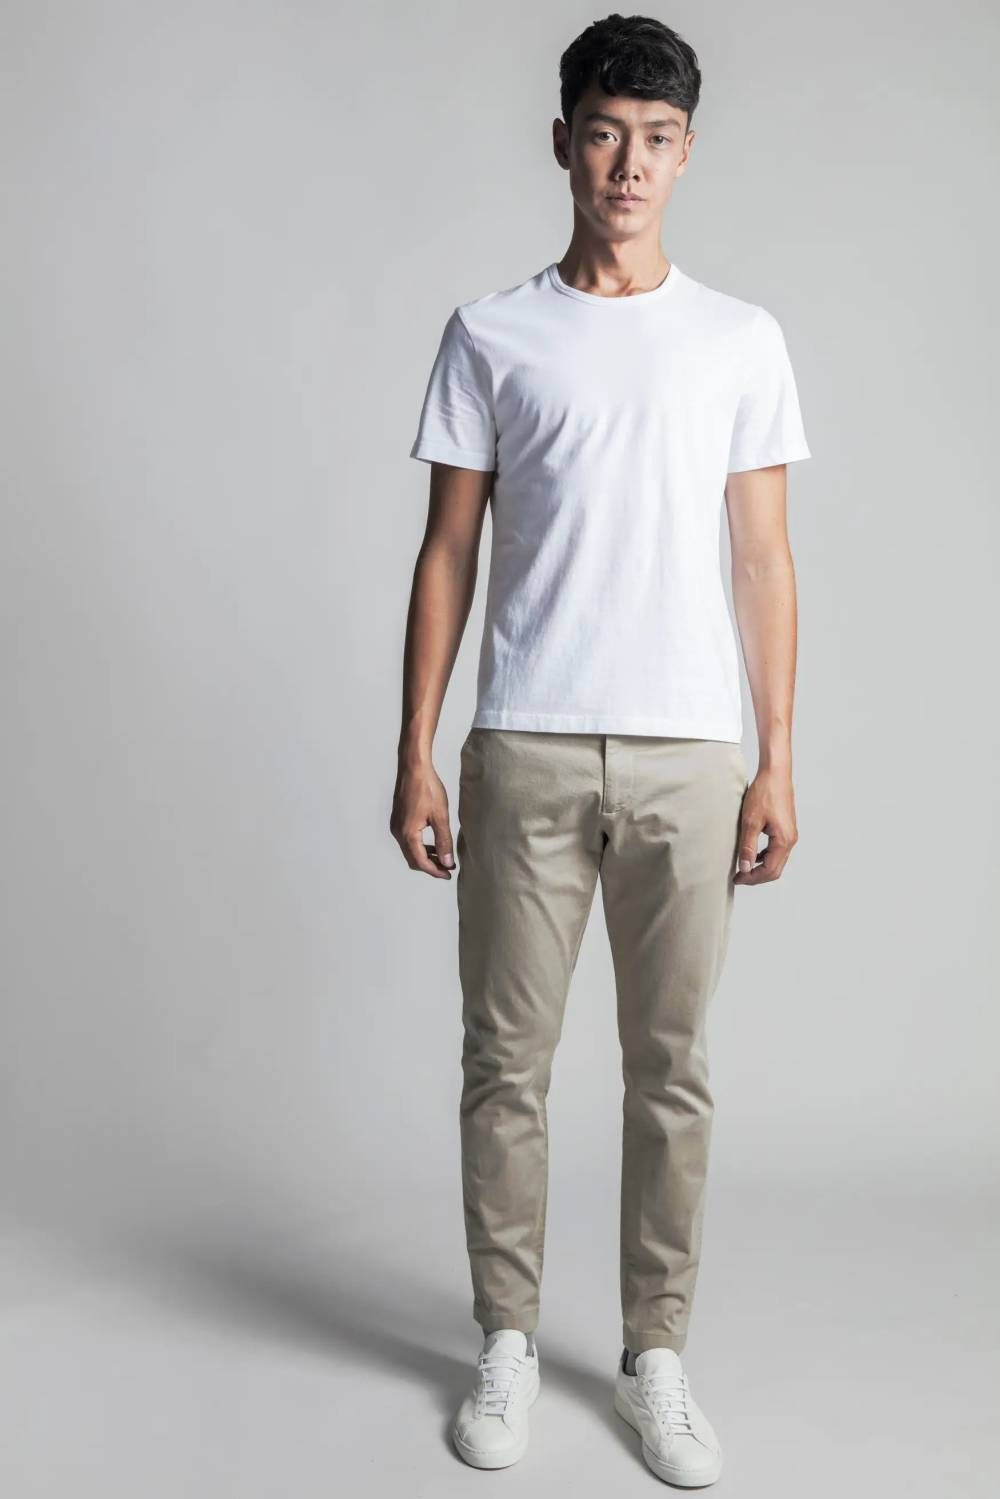 asket ethical clothing mens brand